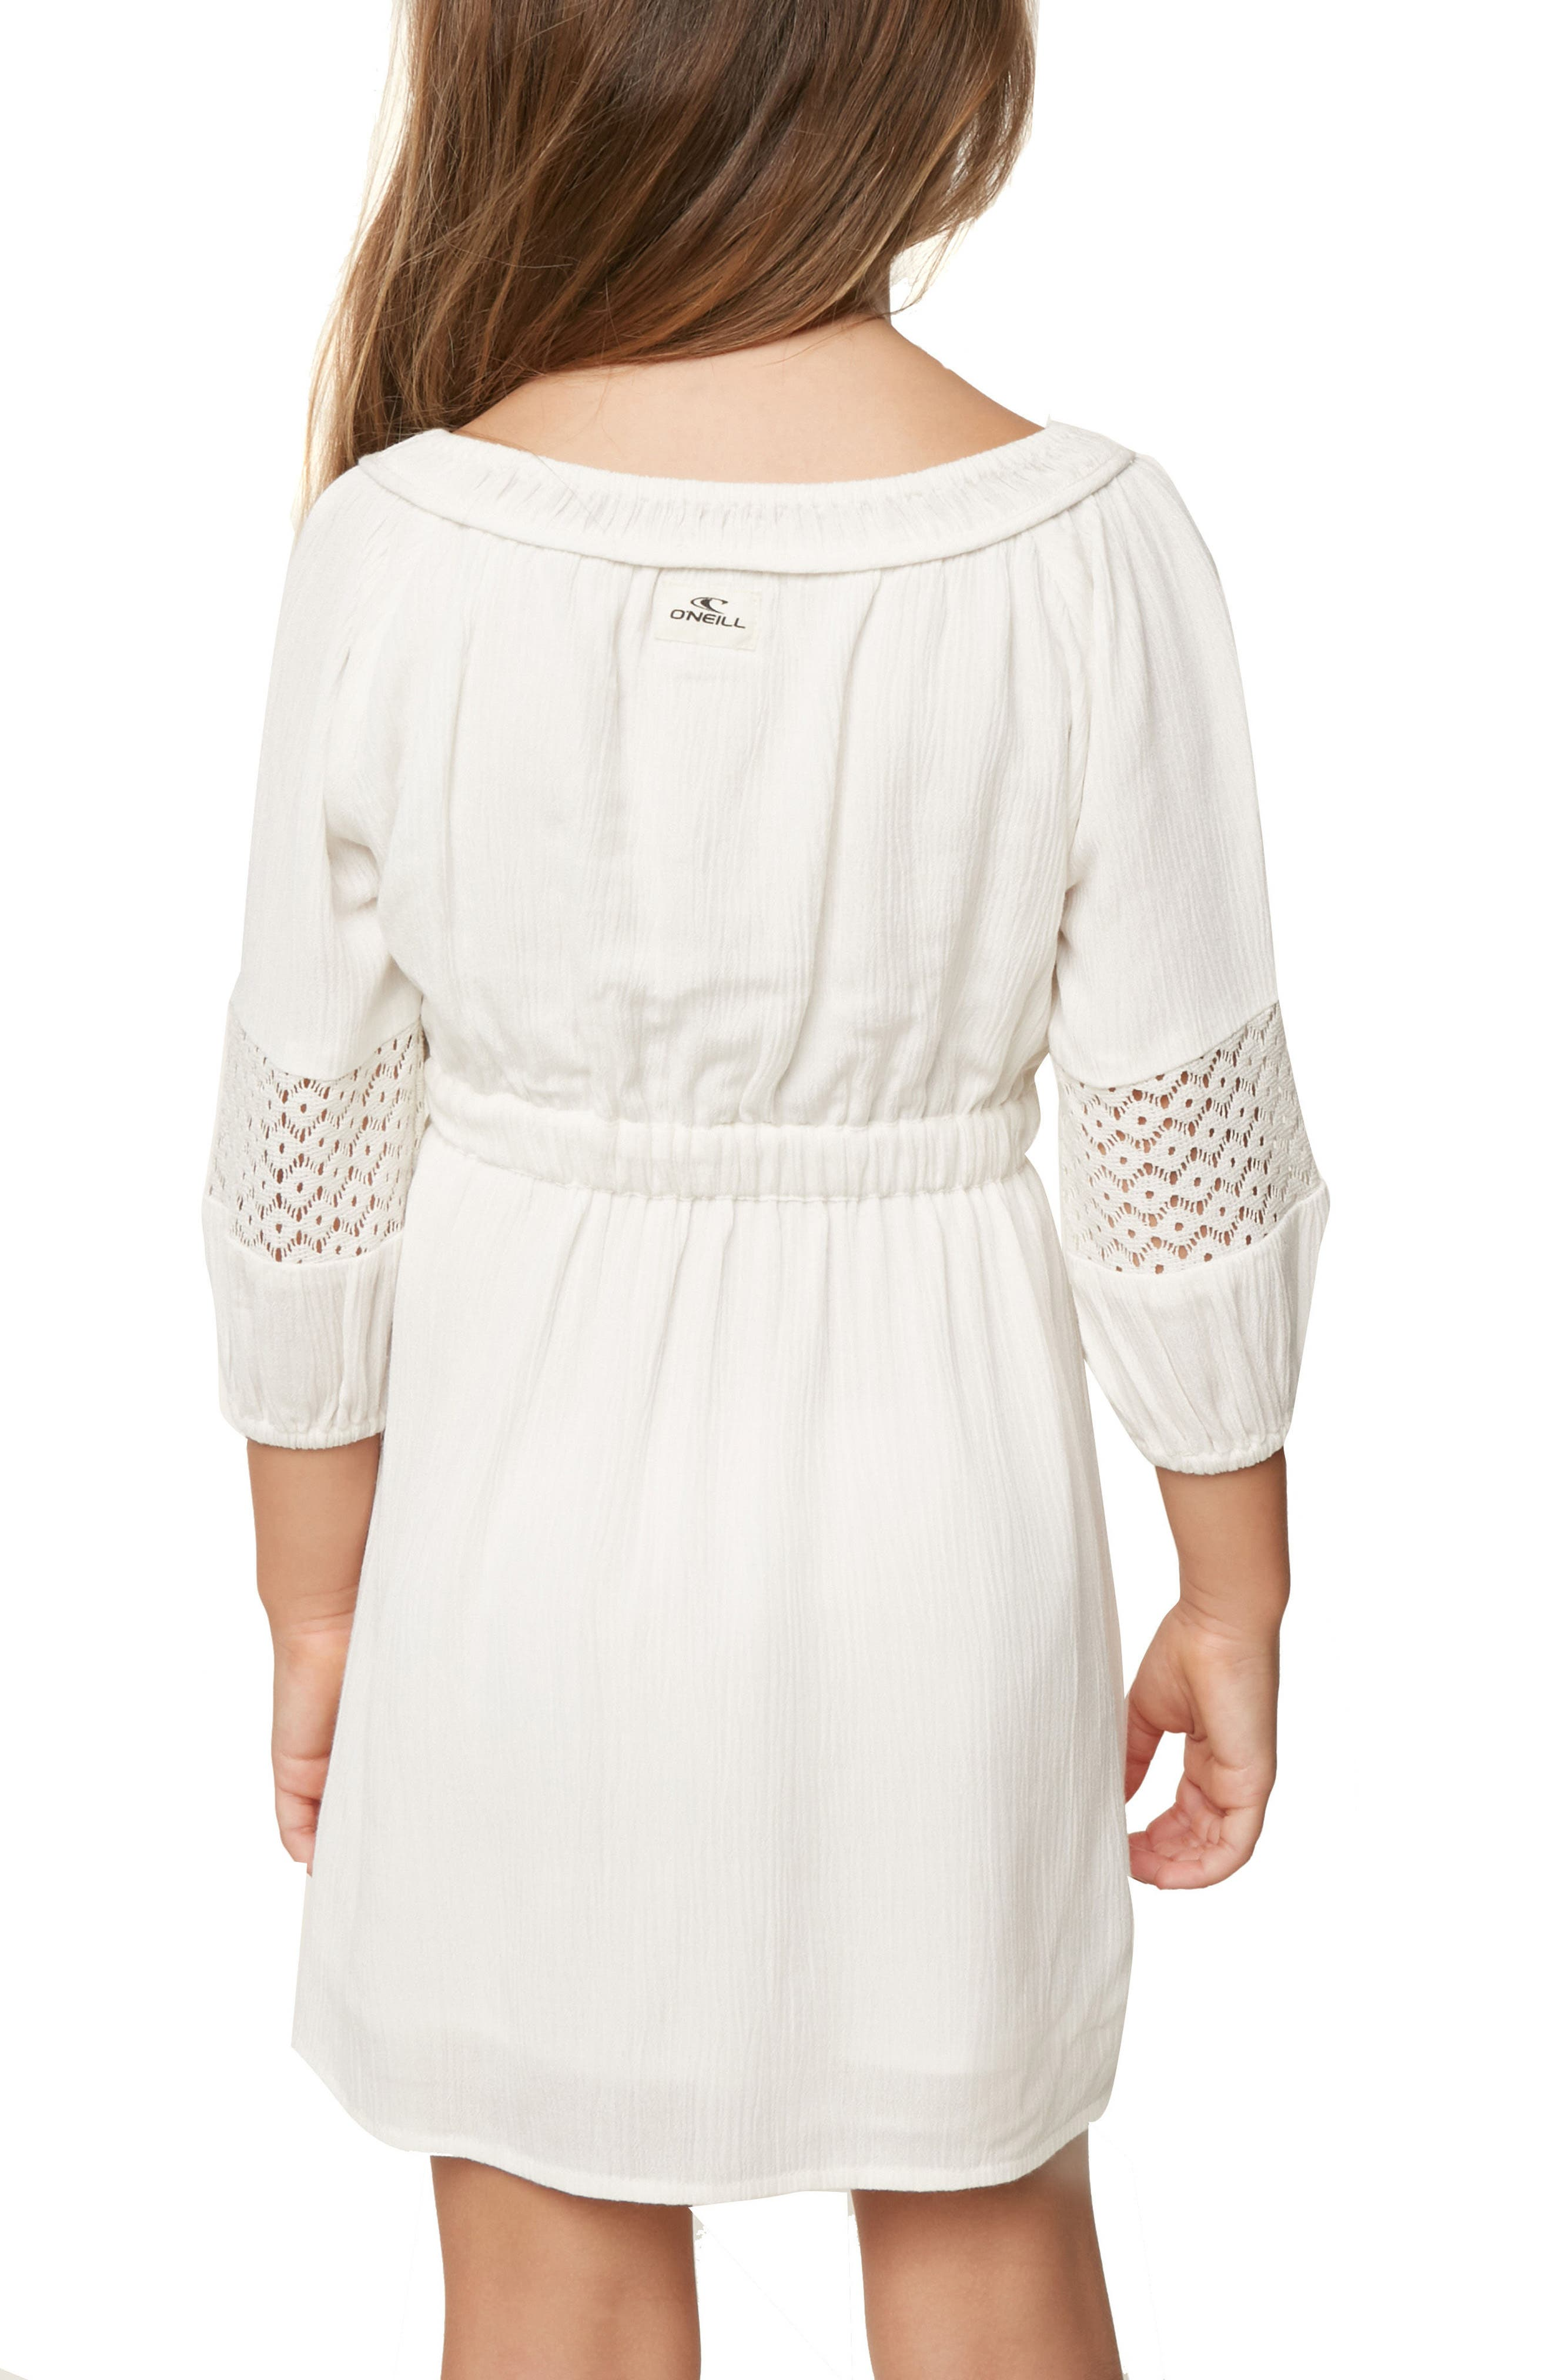 Malina Floral Embroidered Dress,                             Alternate thumbnail 3, color,                             White